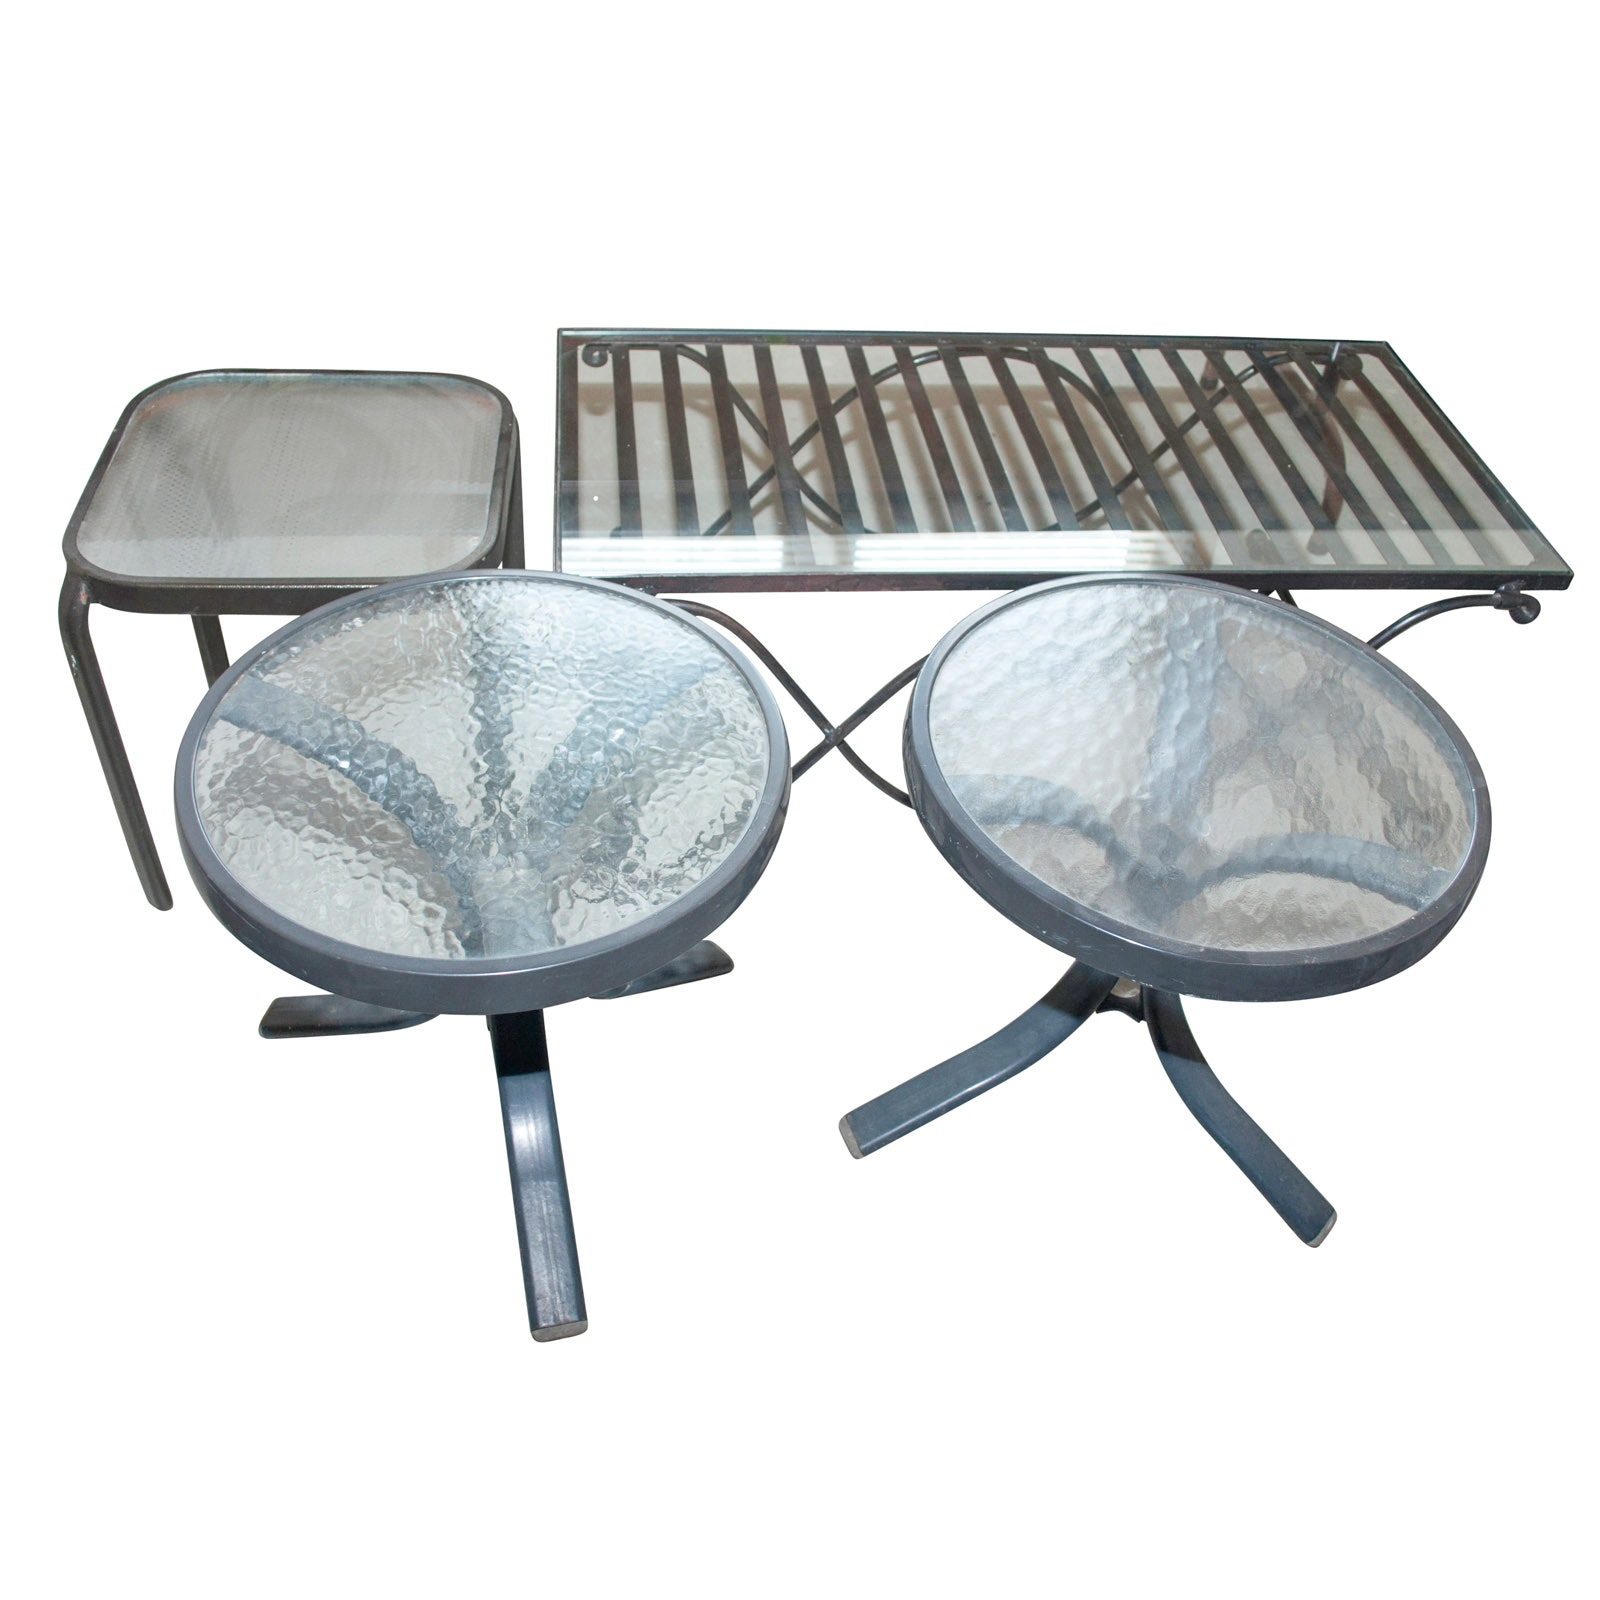 Assortment of Glass Top Patio Tables